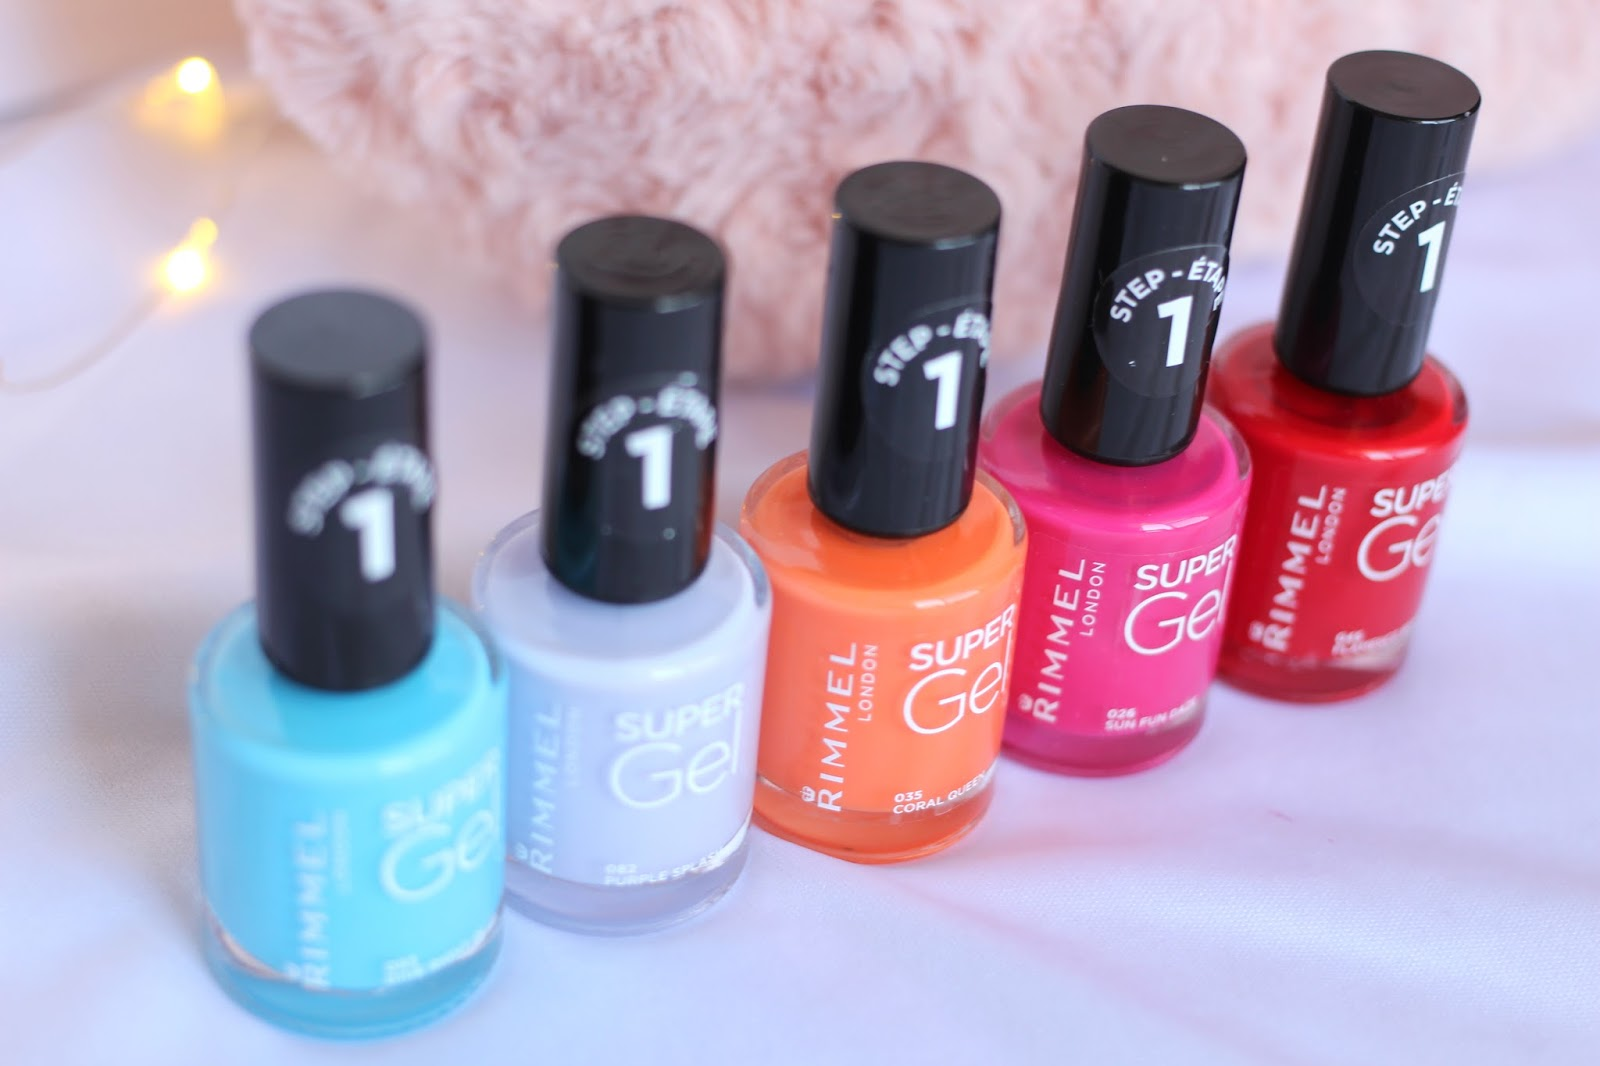 Rimmel Super Gel Collection